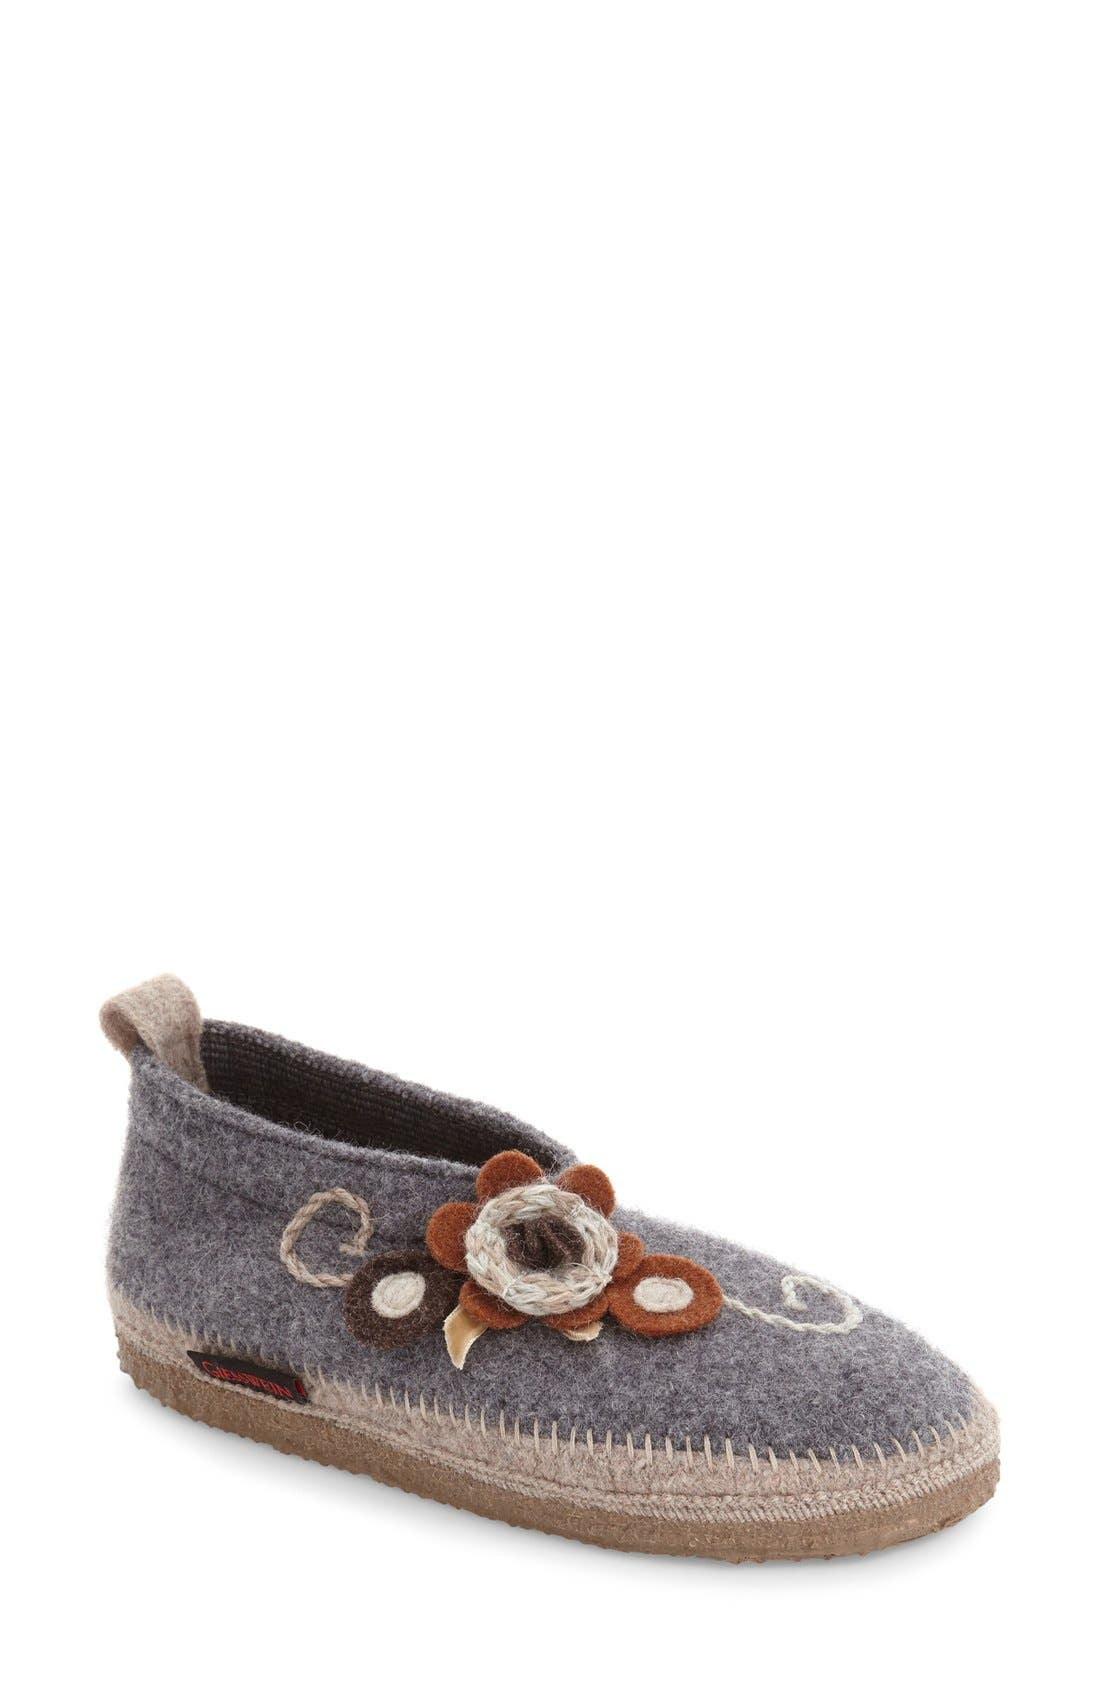 'Lunz' Slipper,                         Main,                         color, Stone Wool